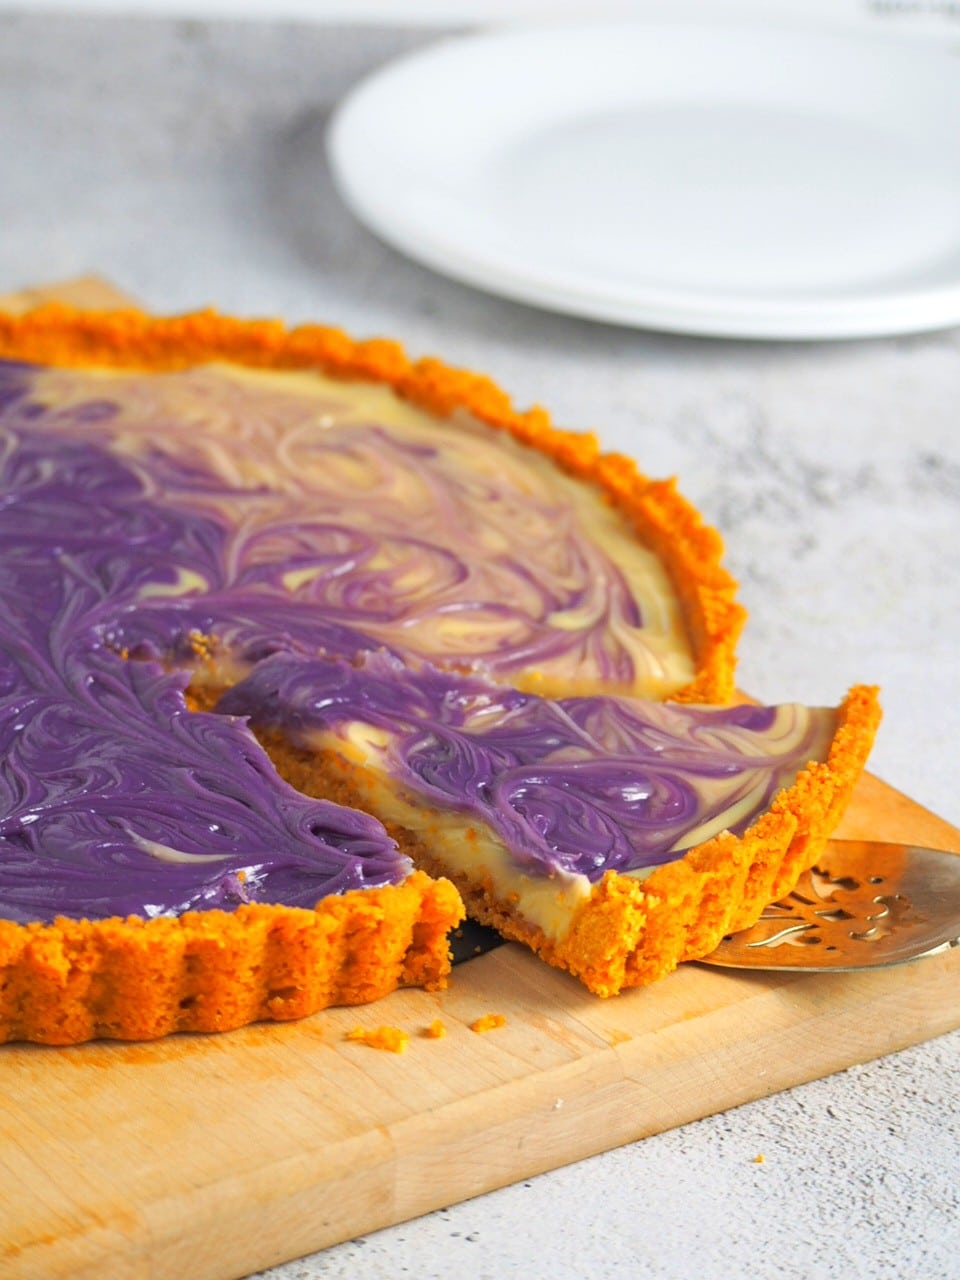 Ube Custard tart with one slice ready for serving.